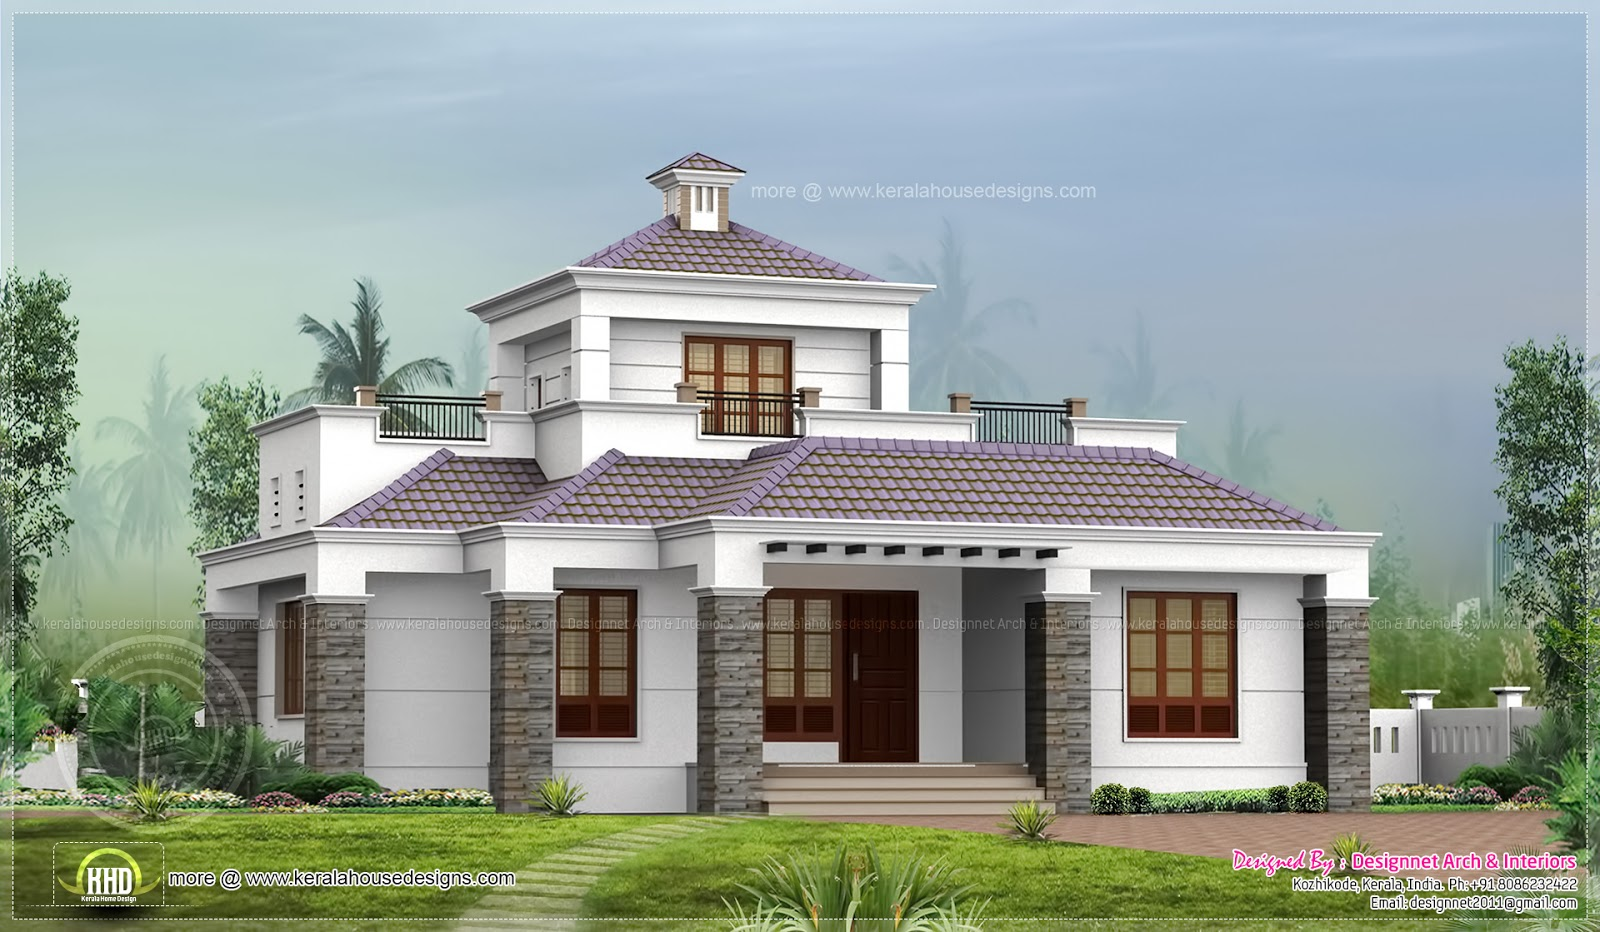 Single floor home with stair room in 1500 sq ft home for Kerala single floor house plans